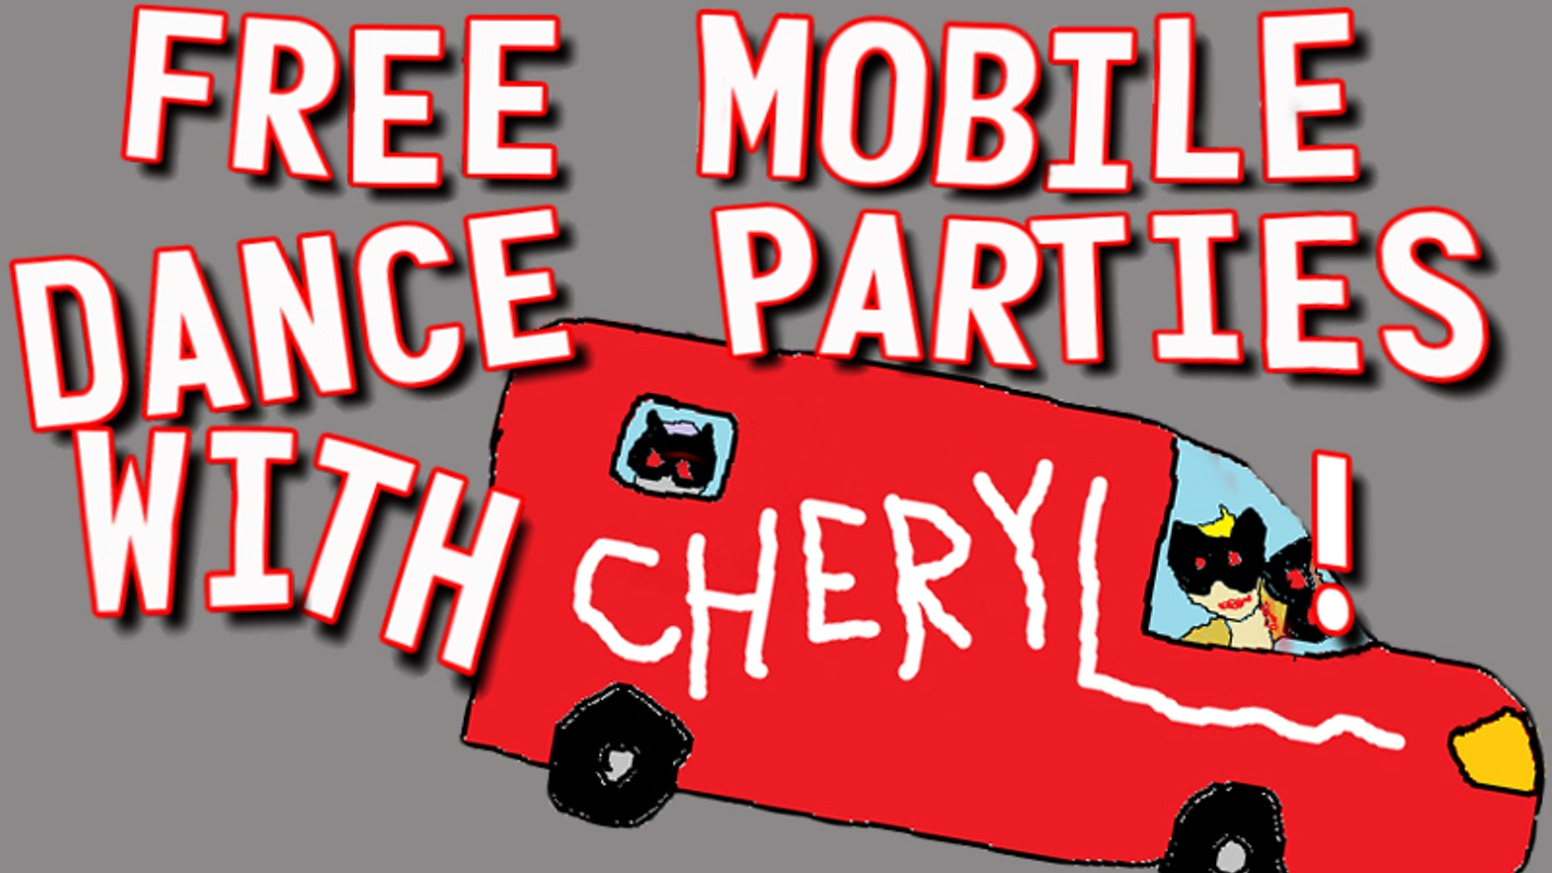 Remember your pledge this summer free clipart graphic transparent library Free mobile dance parties with CHERYL! by CHERYL — Kickstarter graphic transparent library